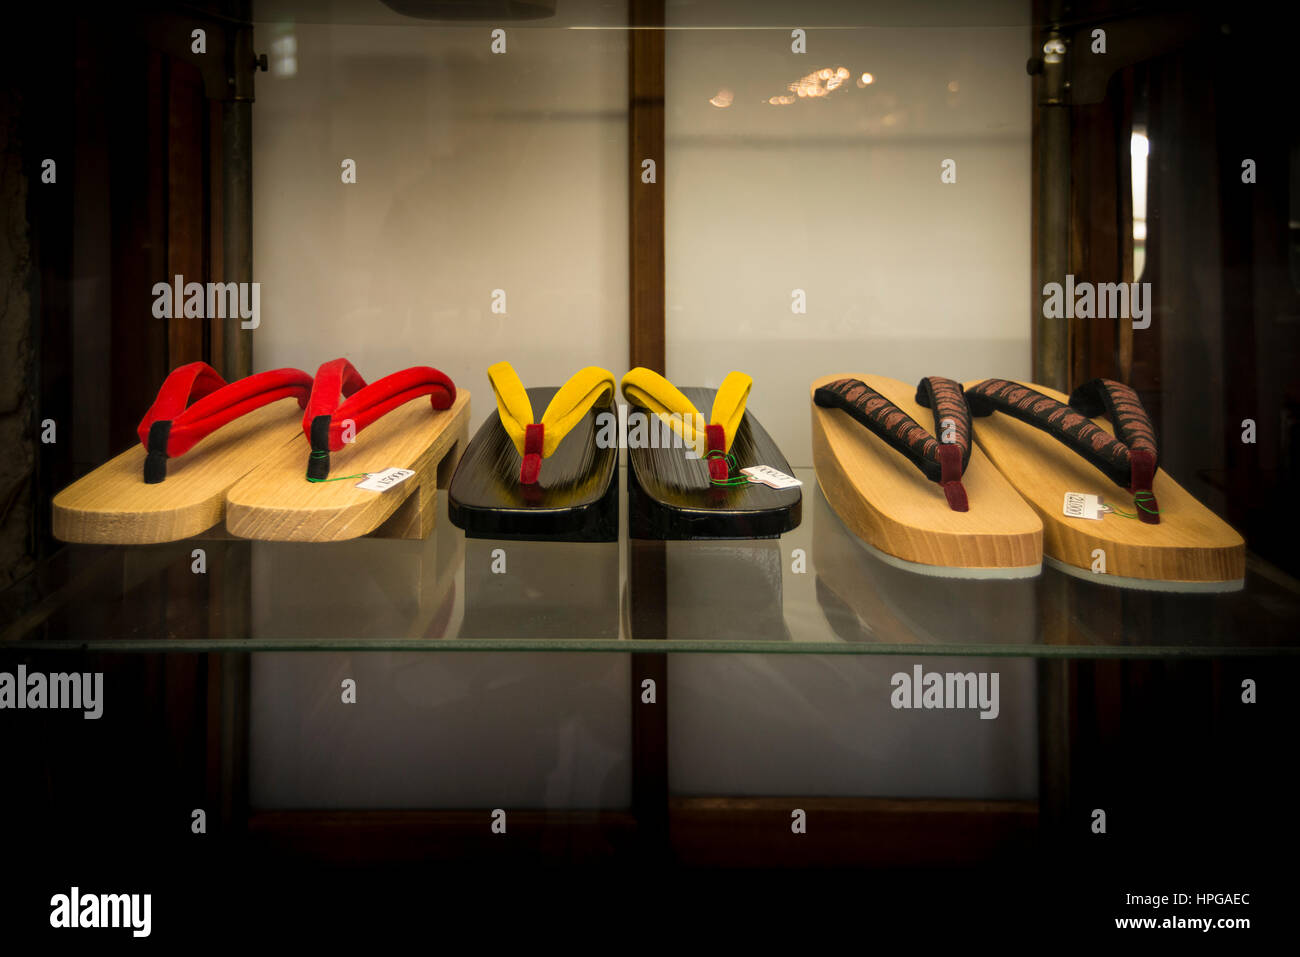 Display of Geta, traditional Japanese footwear, Kyoto, Japan - Stock Image